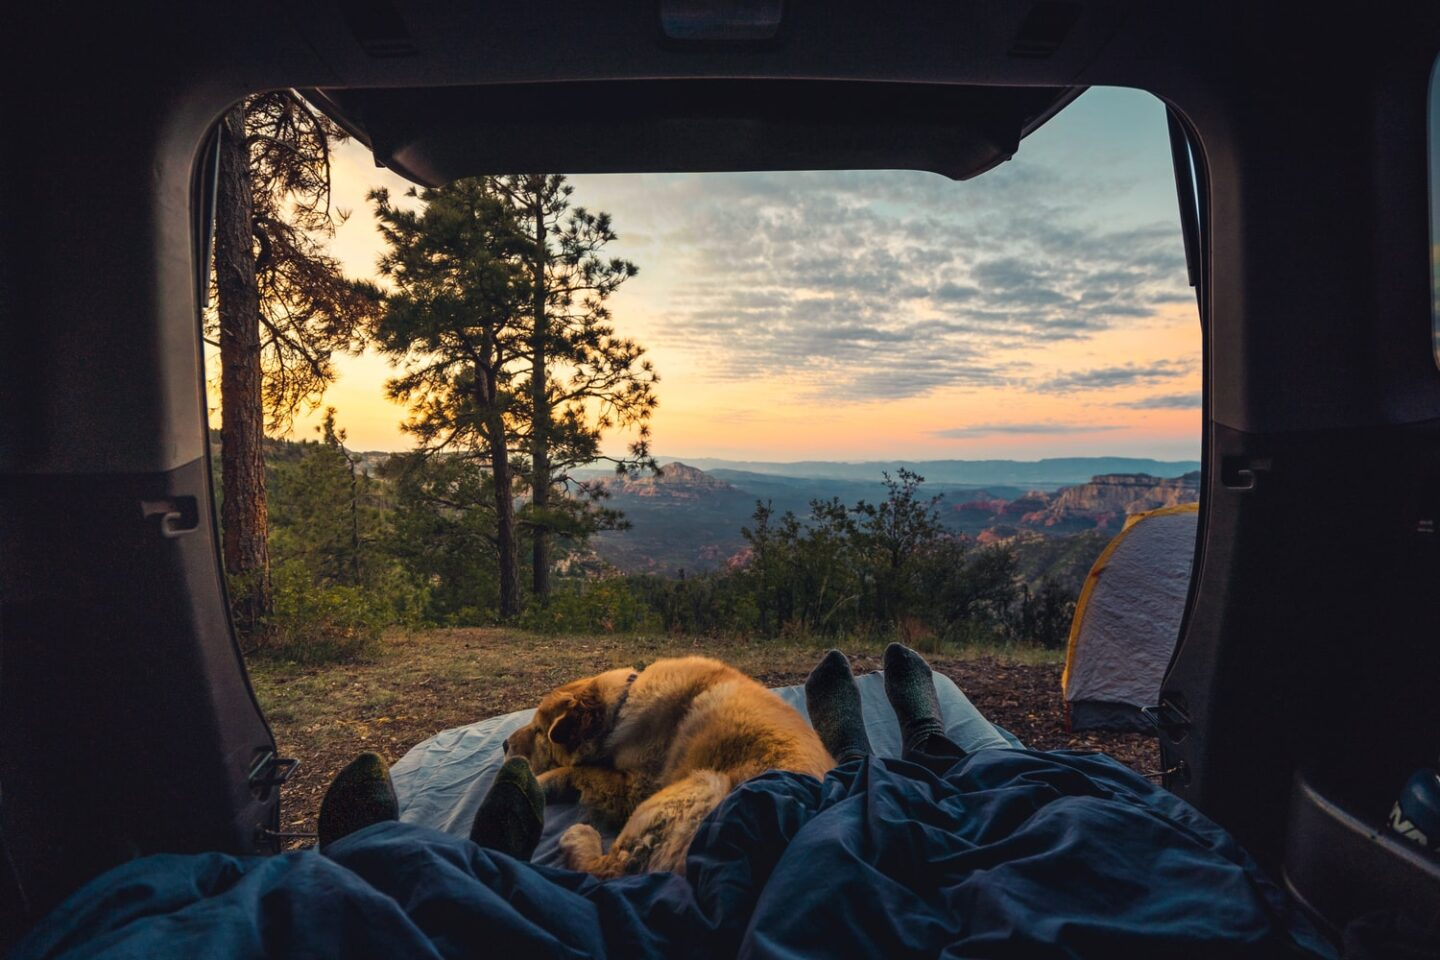 Scenic view from a tent with a dog curled up by someone's feet.